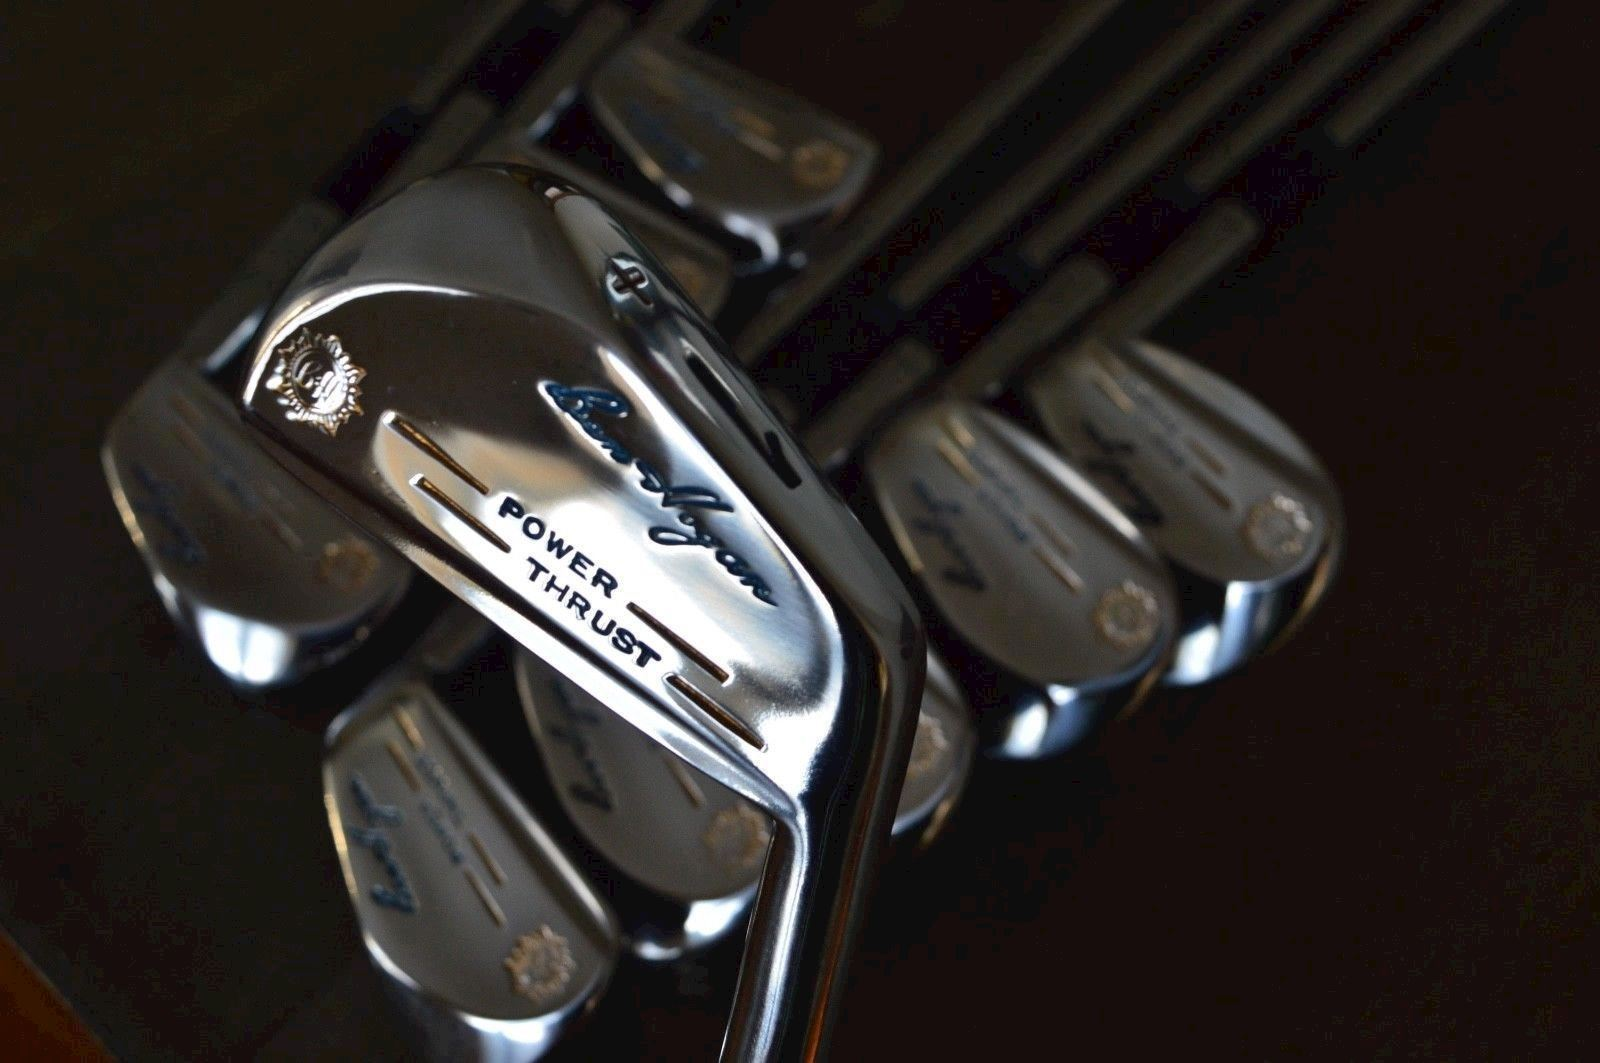 Ben Hogan forged iron set 1961 Power Thrust 1/E - refurbished to 100% mint